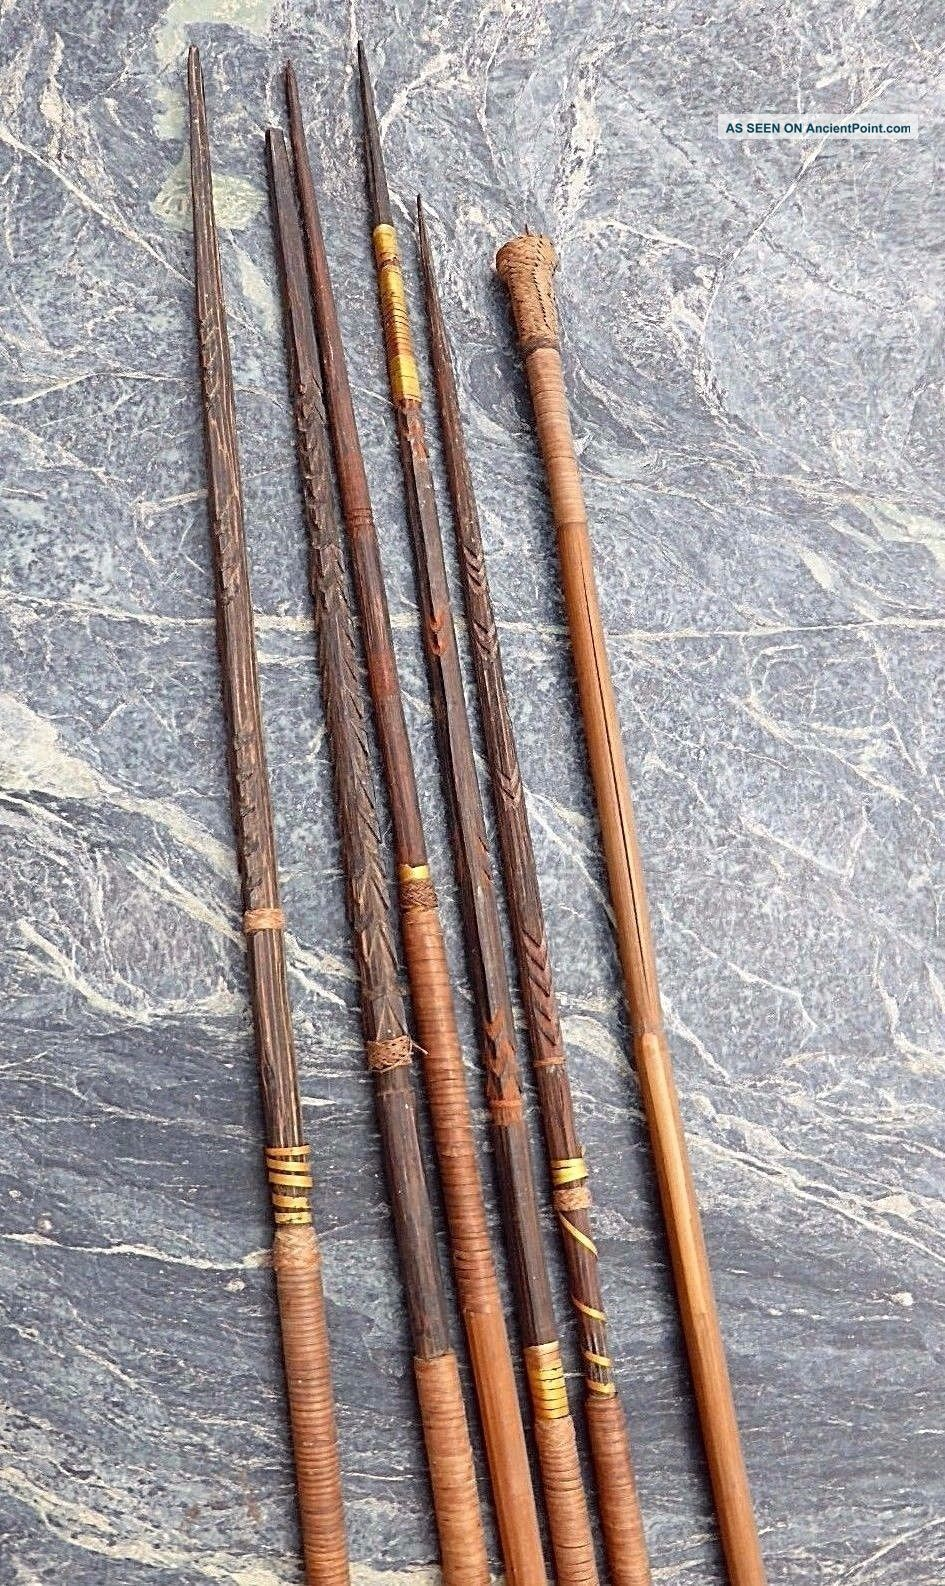 Six Oceanic Papua Guinea Carved Wooden Bamboo Hunting Arrows Spears No Club Pacific Islands & Oceania photo